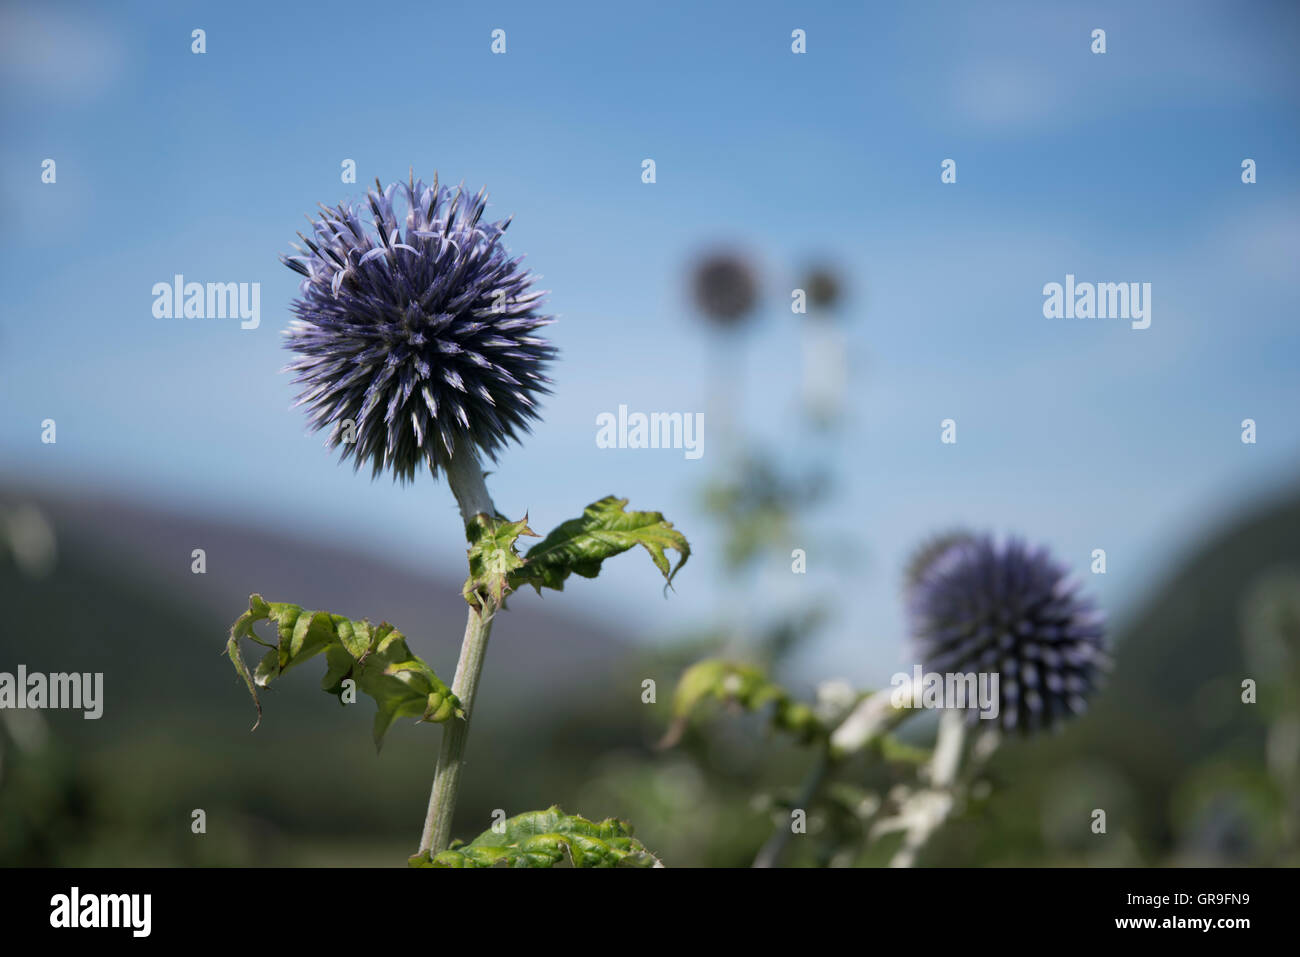 Echinops ritro Taplow Blue ( Globe Thistle ) growing in the Borrowdale Valley, Lake District, Cumbria, UK Stock Photo